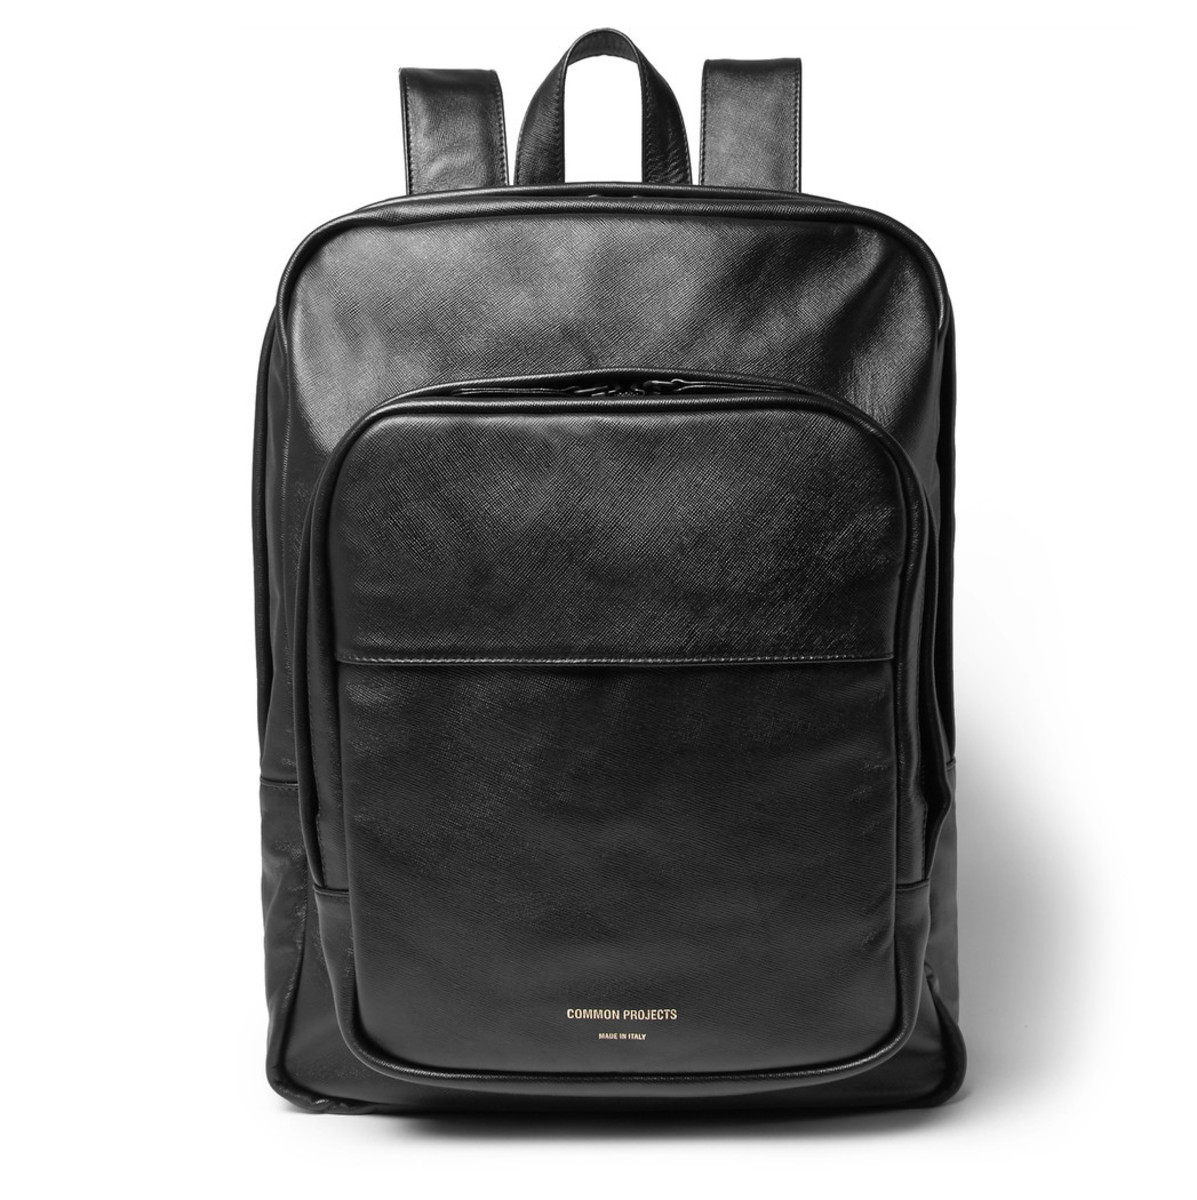 common-projects-cross-grain-leather-backpack.jpg